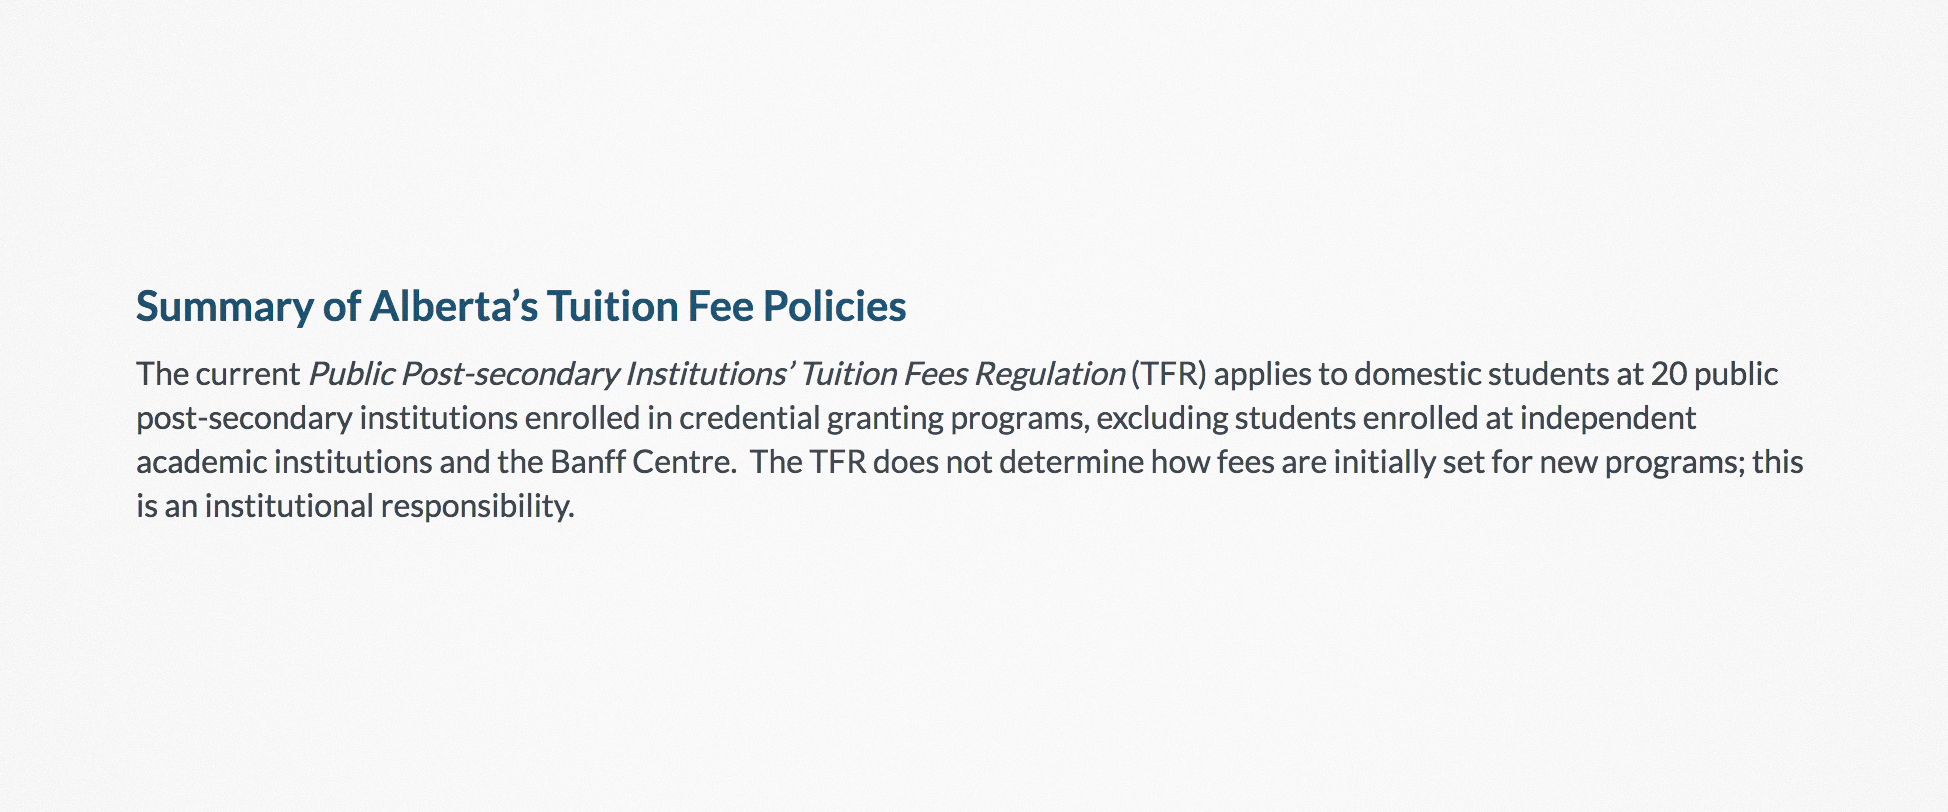 Tuition Review  background document .